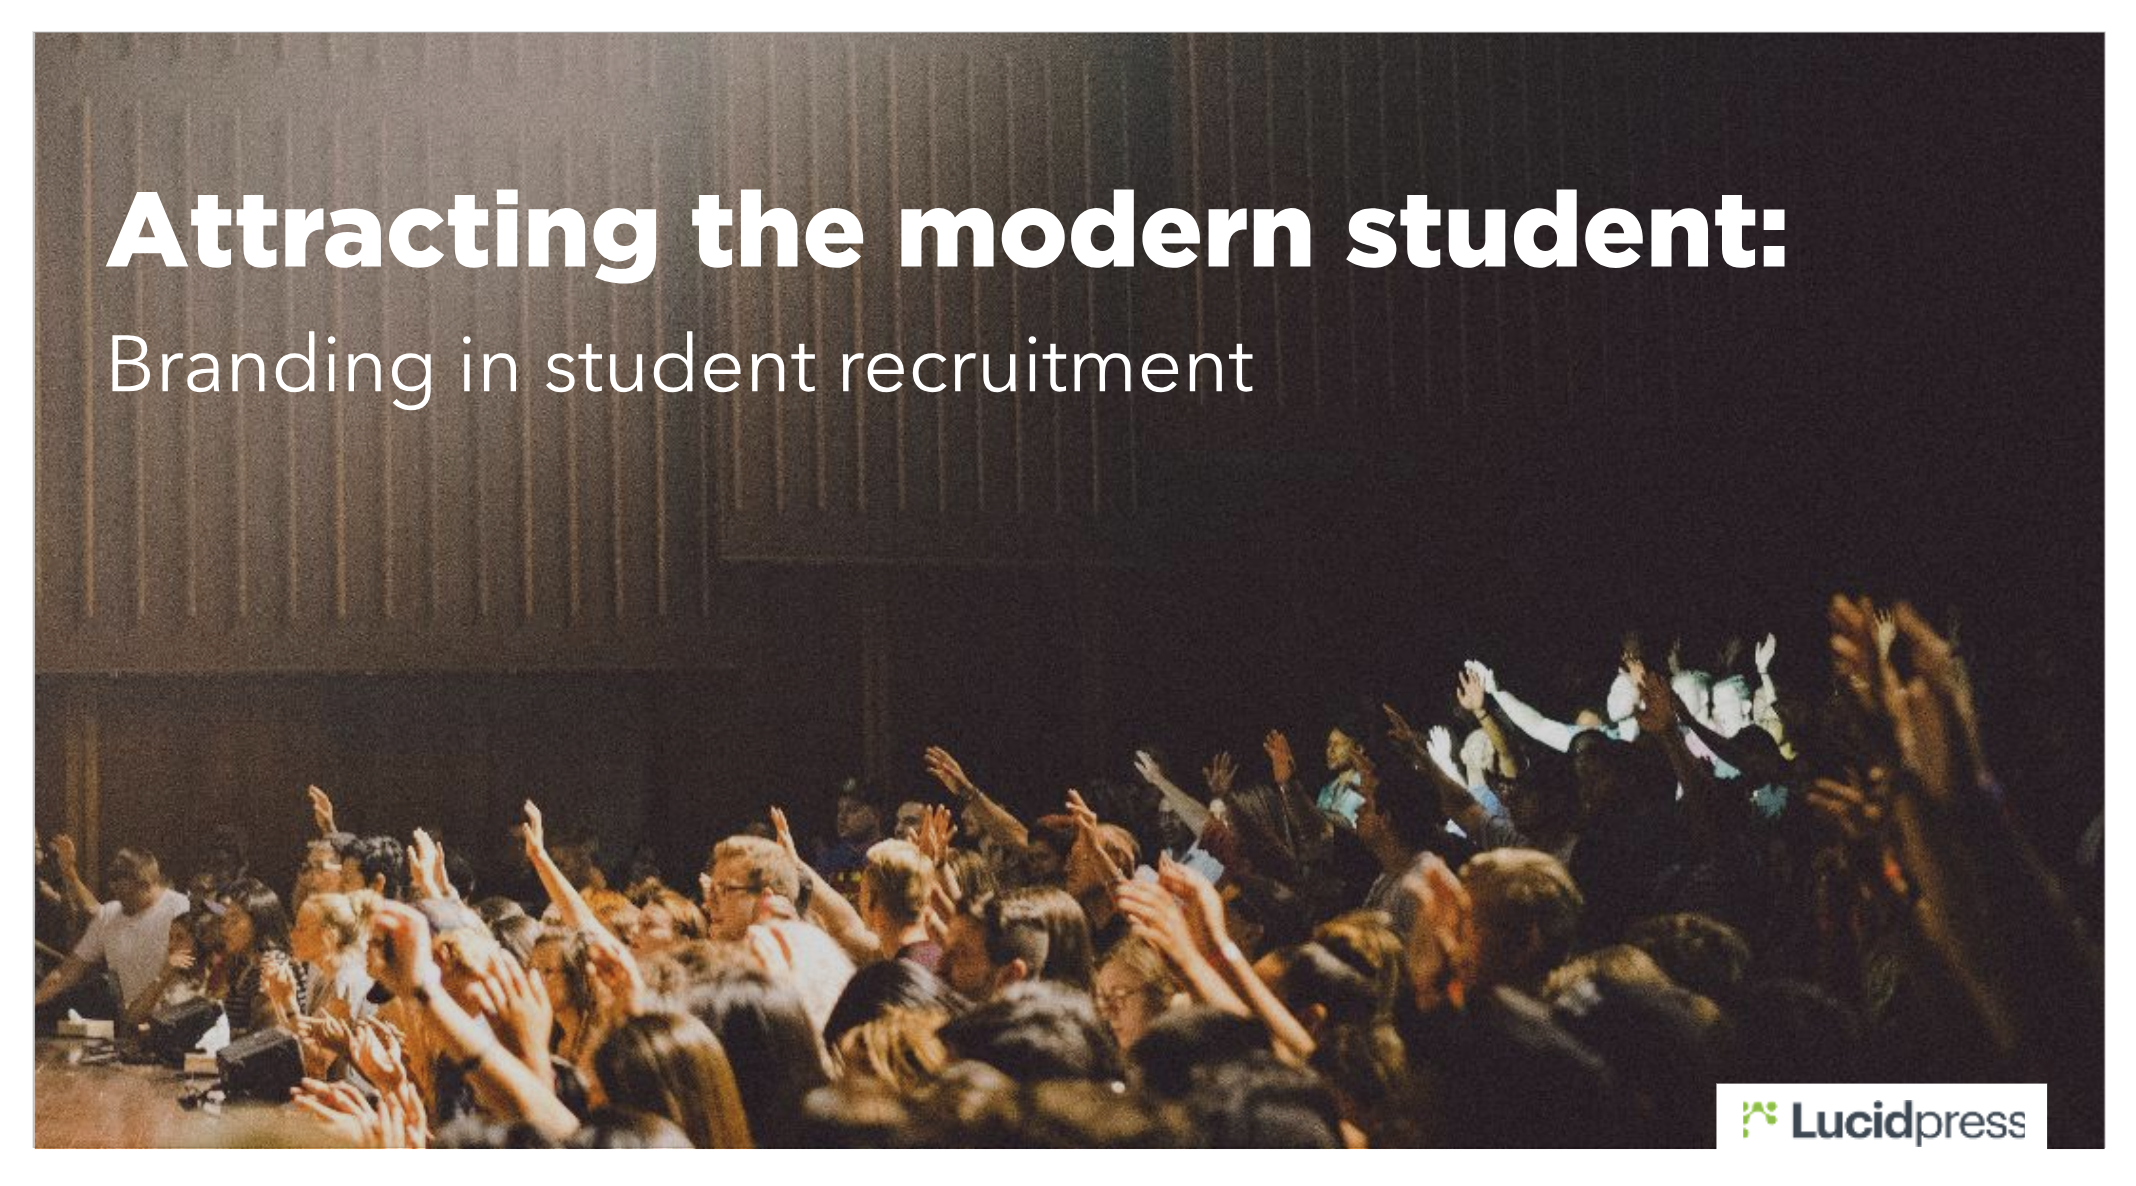 Branding in student recruitment cover